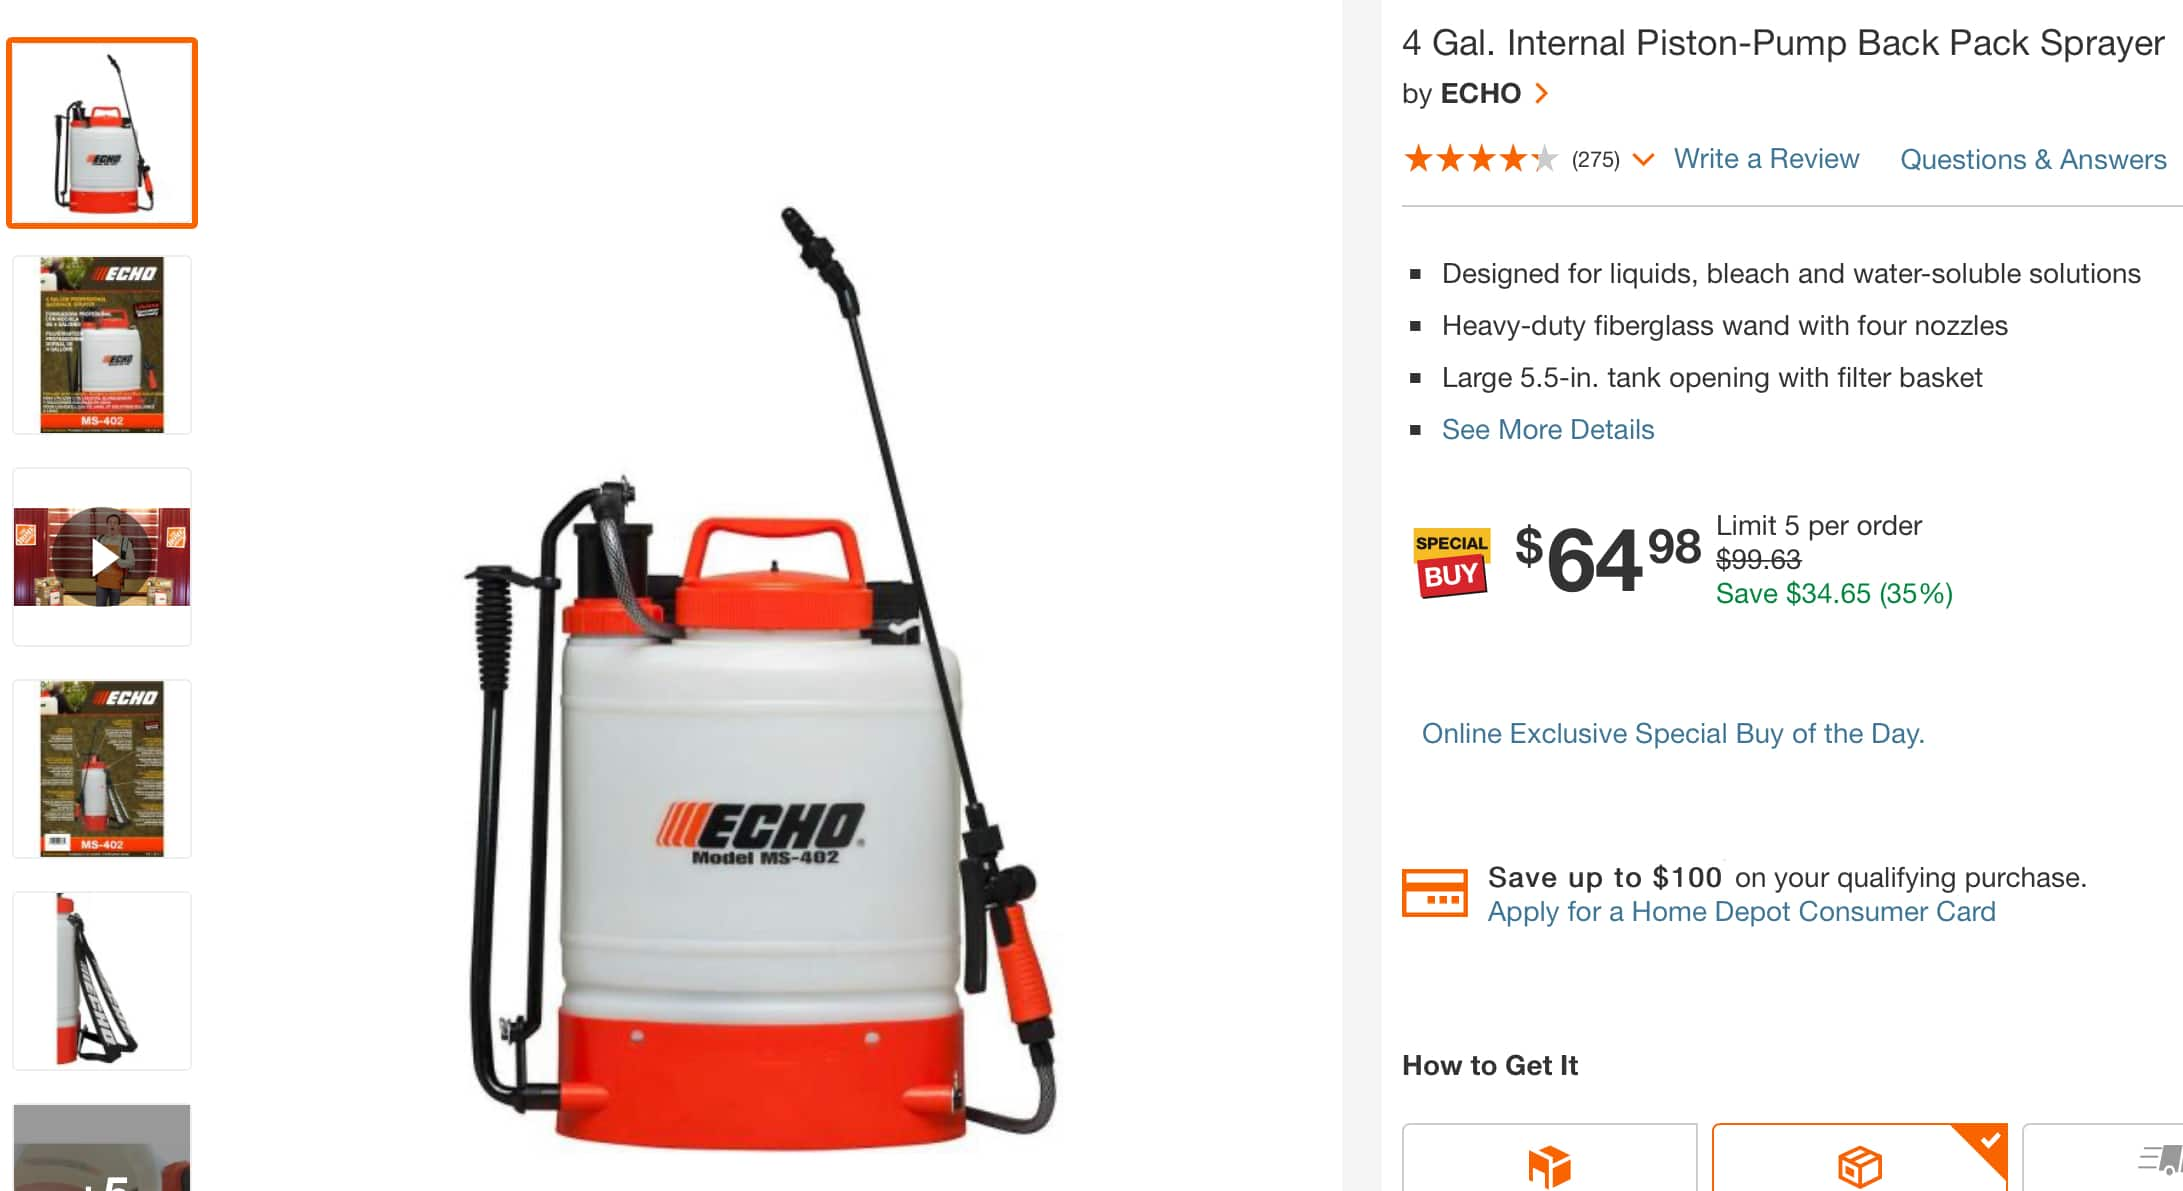 Echo 4 Gallon Back Pack Sprayer on sale $64.98 @ the Home Depot